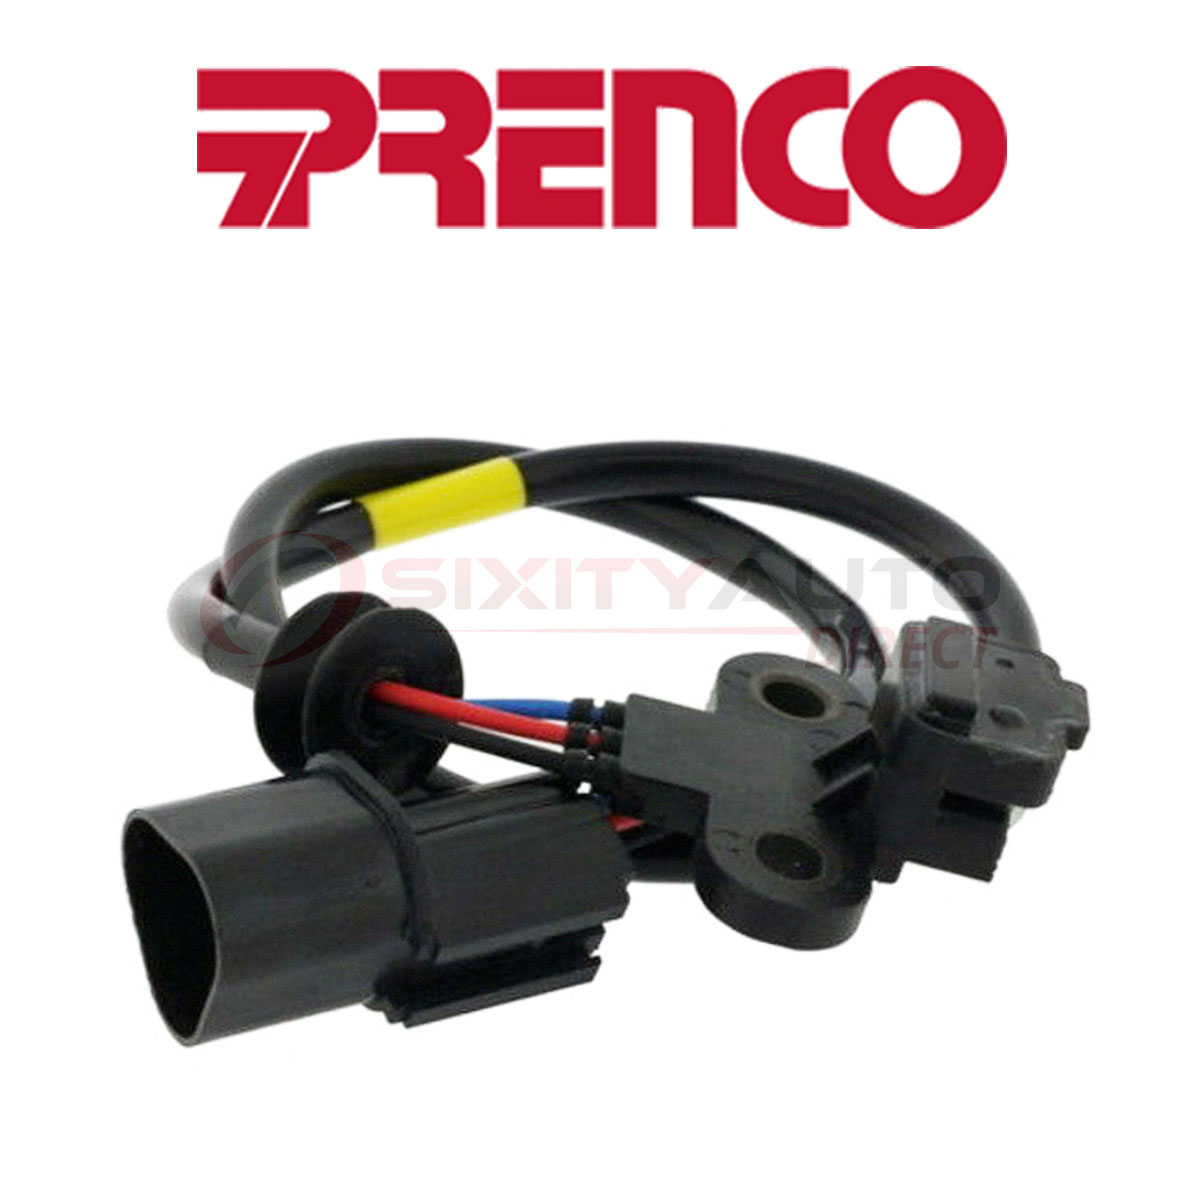 Prenco Crankshaft Position Sensor For 1997